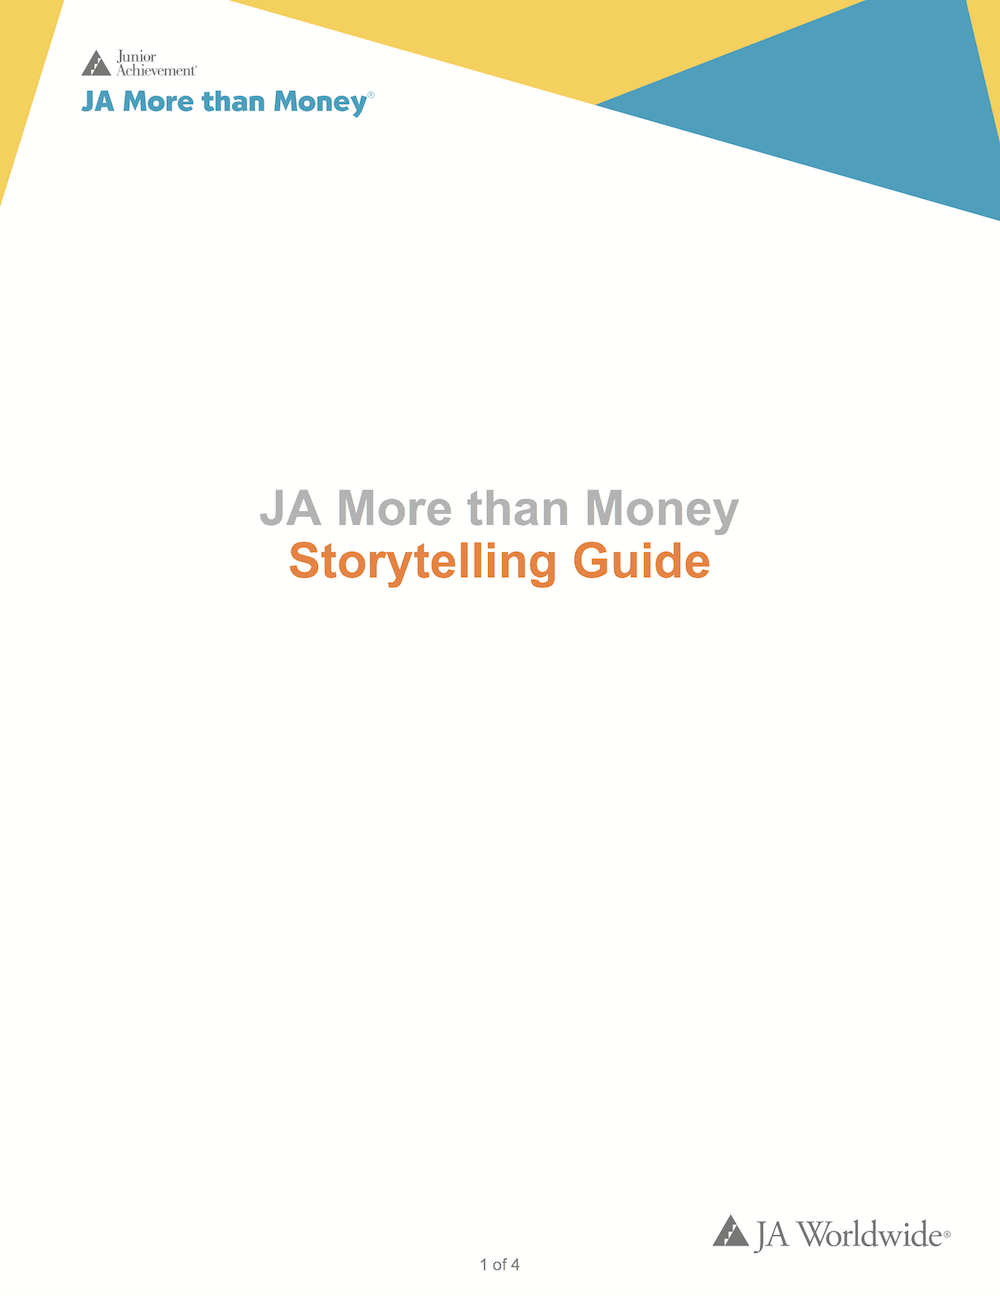 JA More than Money: Storytelling Guide (download  Word document )